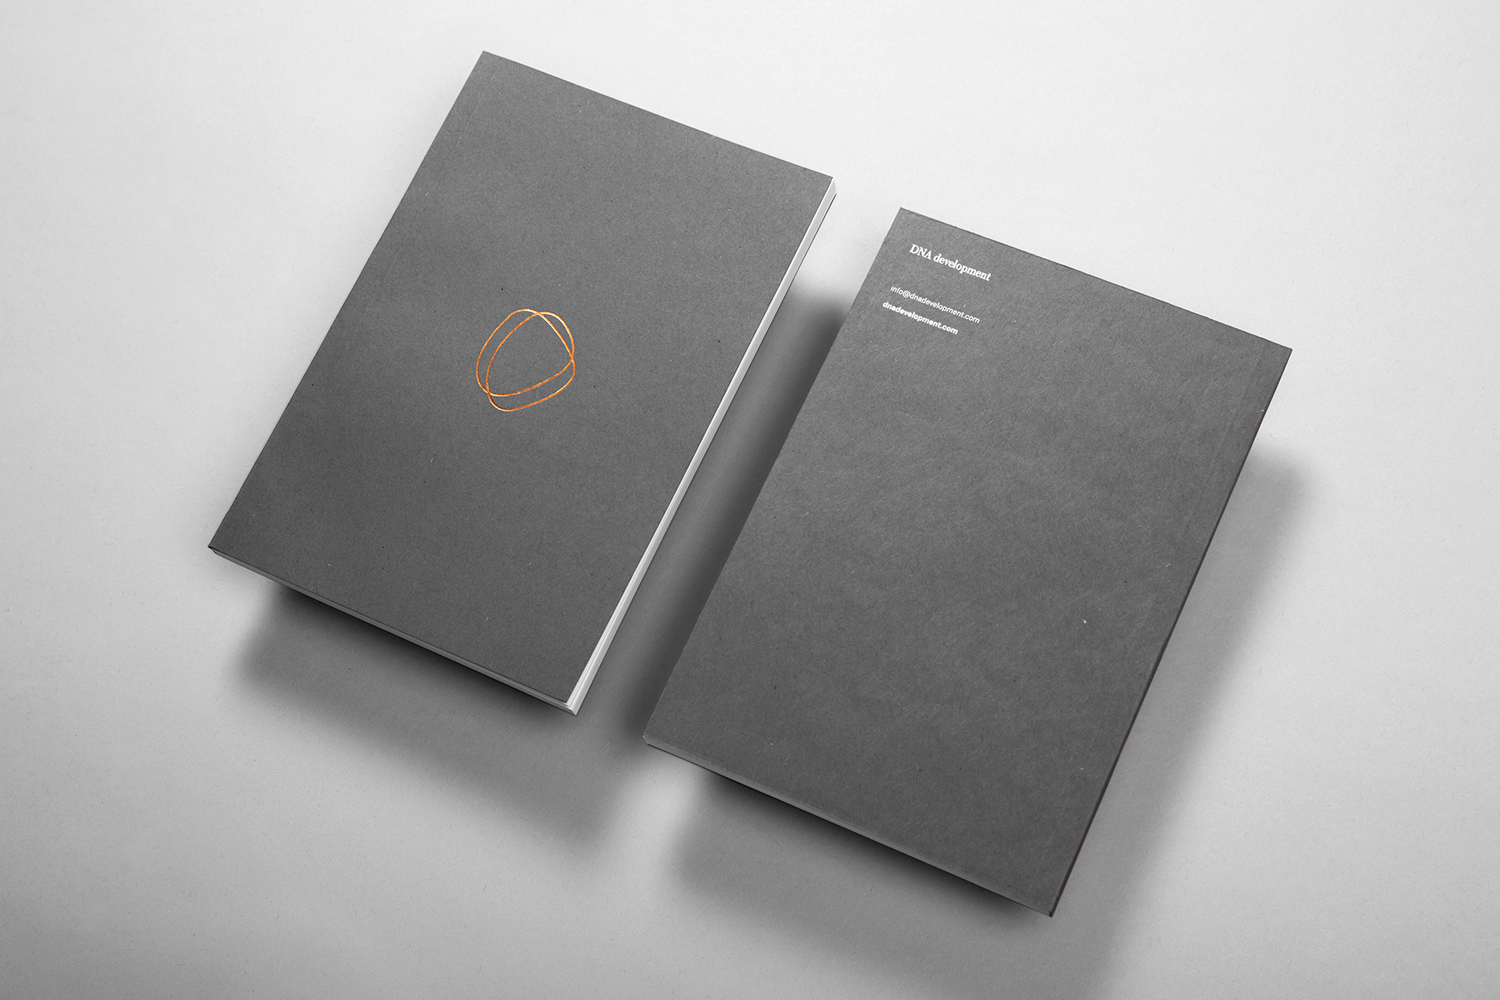 Brand identity, white foiled notebook for real estate investment and development business DNA development by Face